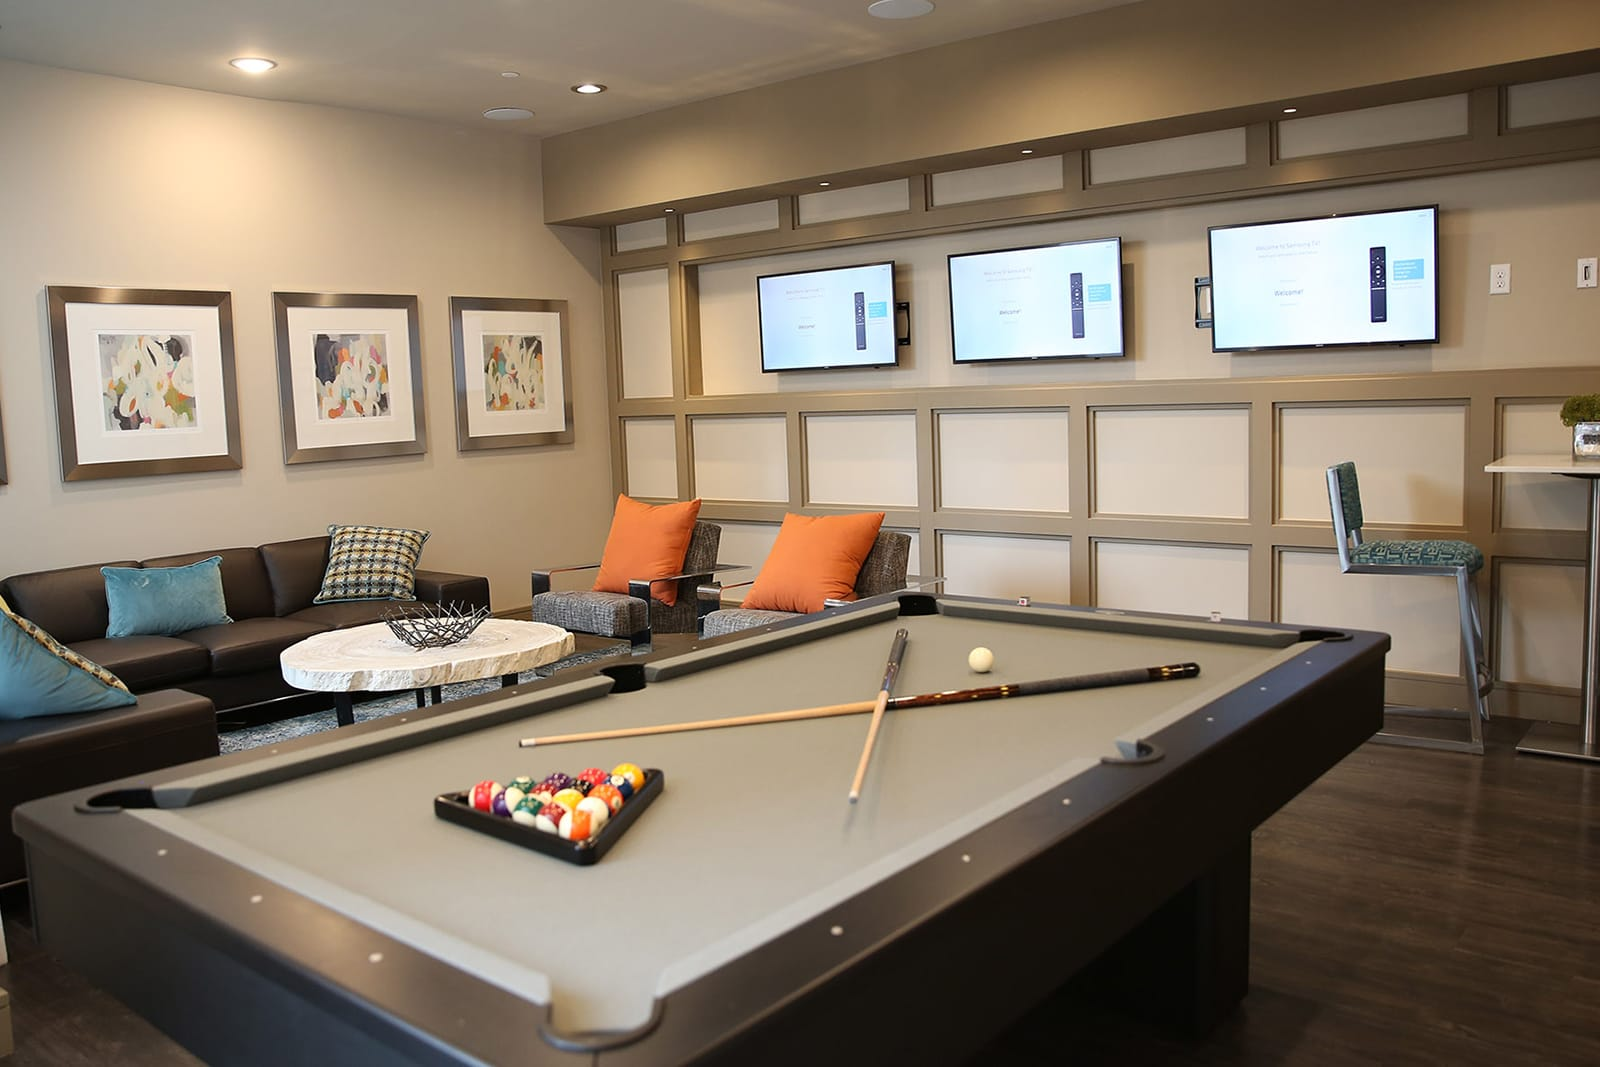 Game Room With Billiards And Video Games at Centric LoHi by Windsor, 2525 18th St, Denver